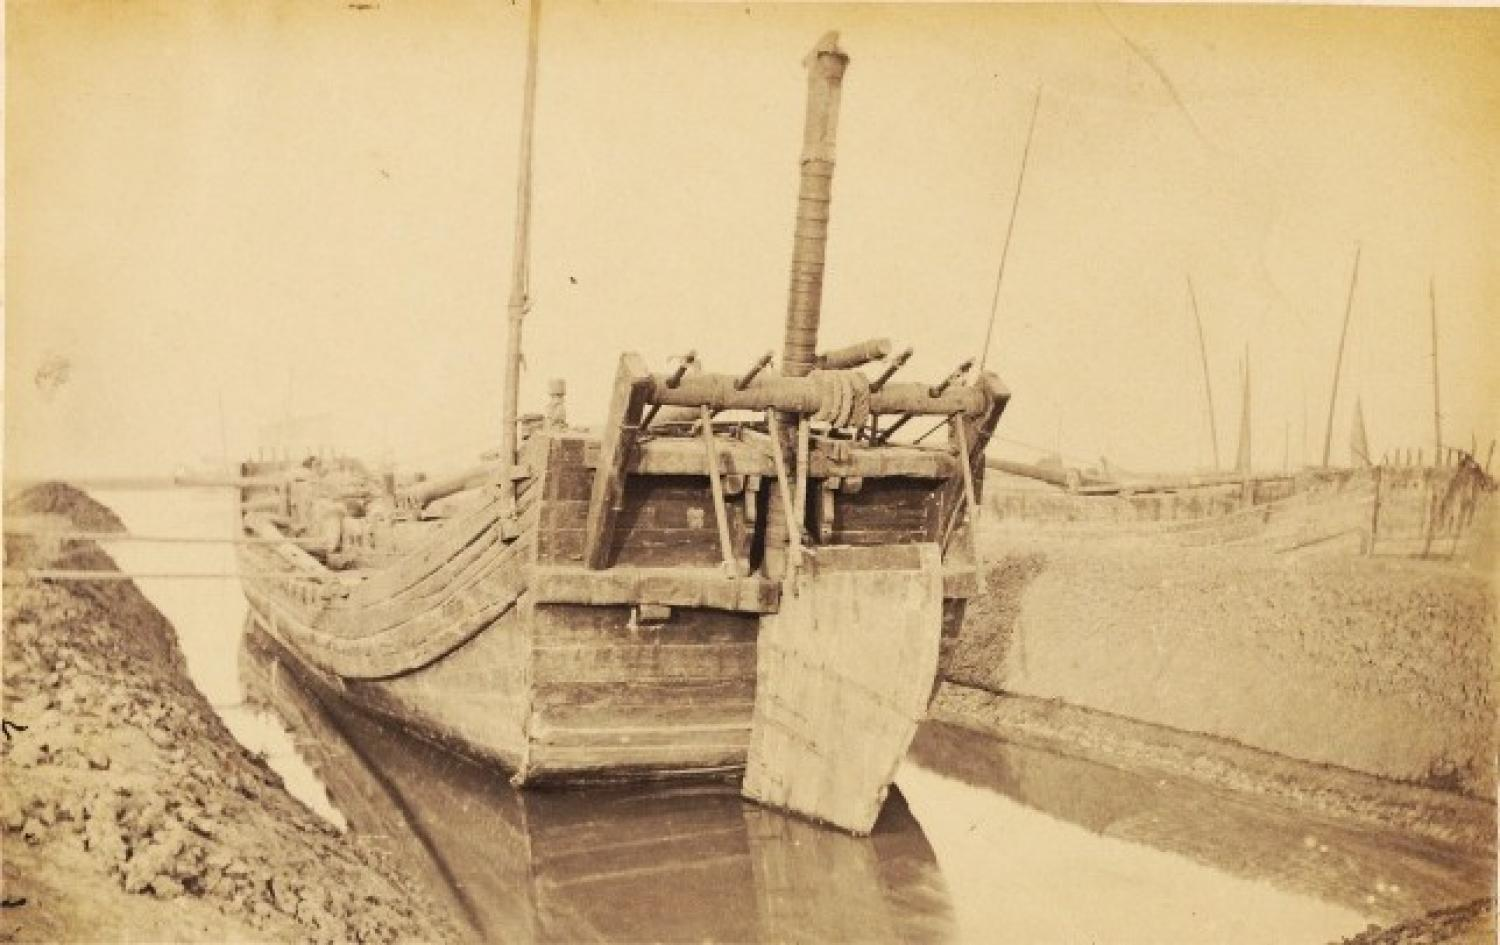 Junk in Winter Quarters - Taku Peking By John DudgeonC1865